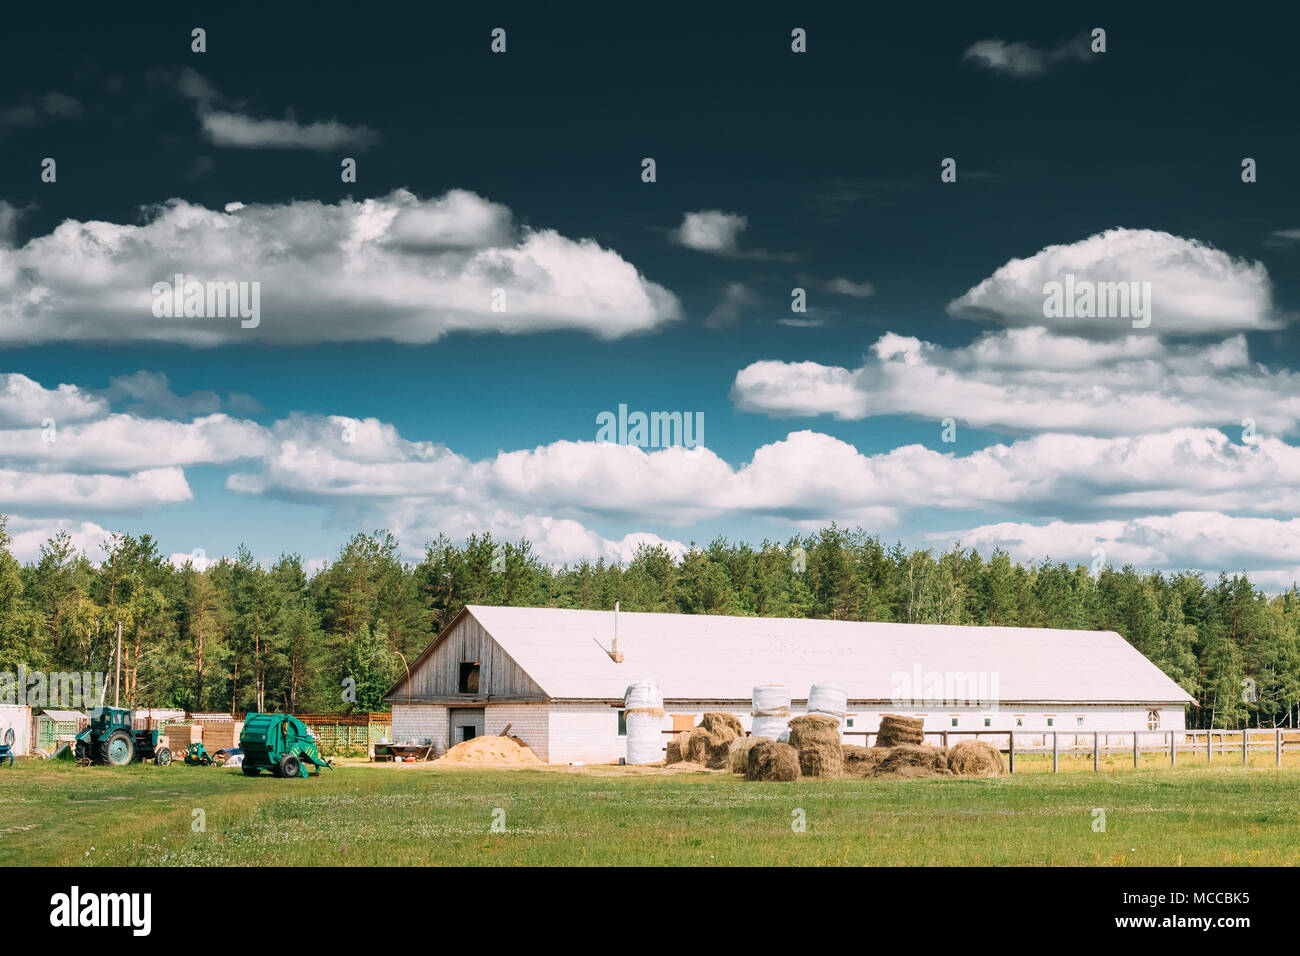 Countryside Rural Paddock For Horse, Shed Or Barn Or Stable With Haystacks In Late Summer Season. Agricultural Rural Farm Landscape At Sunny Day. - Stock Image